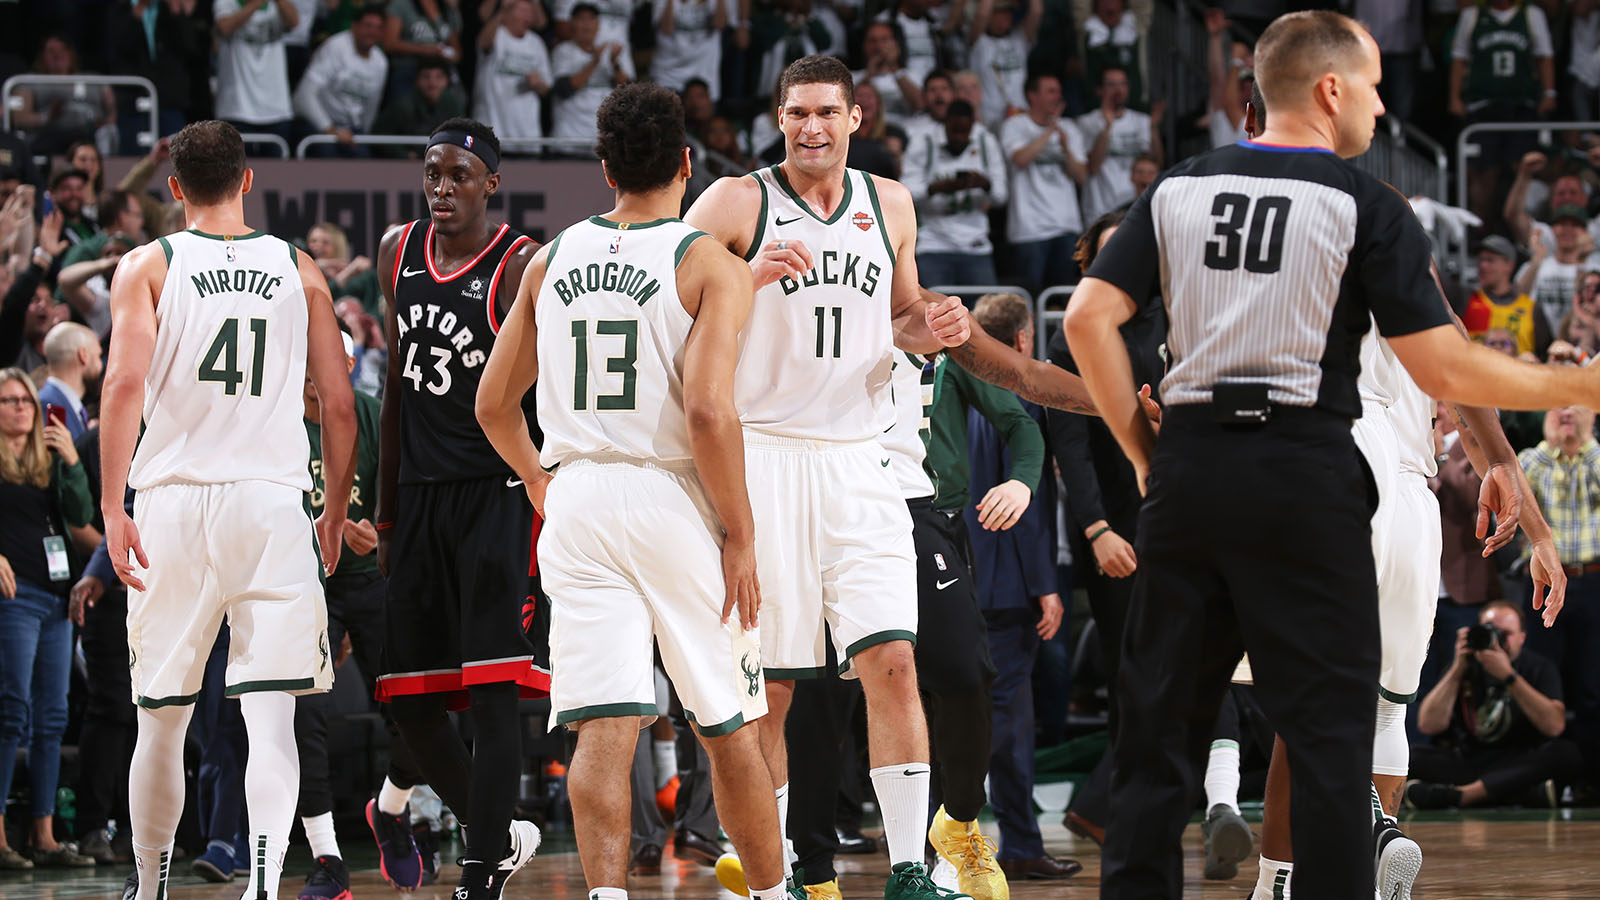 MILWAUKEE, WI - MAY 15: Brook Lopez #11 of the Milwaukee Bucks smiles during a game against the Toronto Raptors during Game One of the Eastern Conference Finals of the 2019 NBA Playoffs on May 15, 2019 at the Fiserv Forum Center in Milwaukee, Wisconsin. NOTE TO USER: User expressly acknowledges and agrees that, by downloading and or using this Photograph, user is consenting to the terms and conditions of the Getty Images License Agreement. Mandatory Copyright Notice: Copyright 2019 NBAE (Photo by Gary Dineen/NBAE via Getty Images).